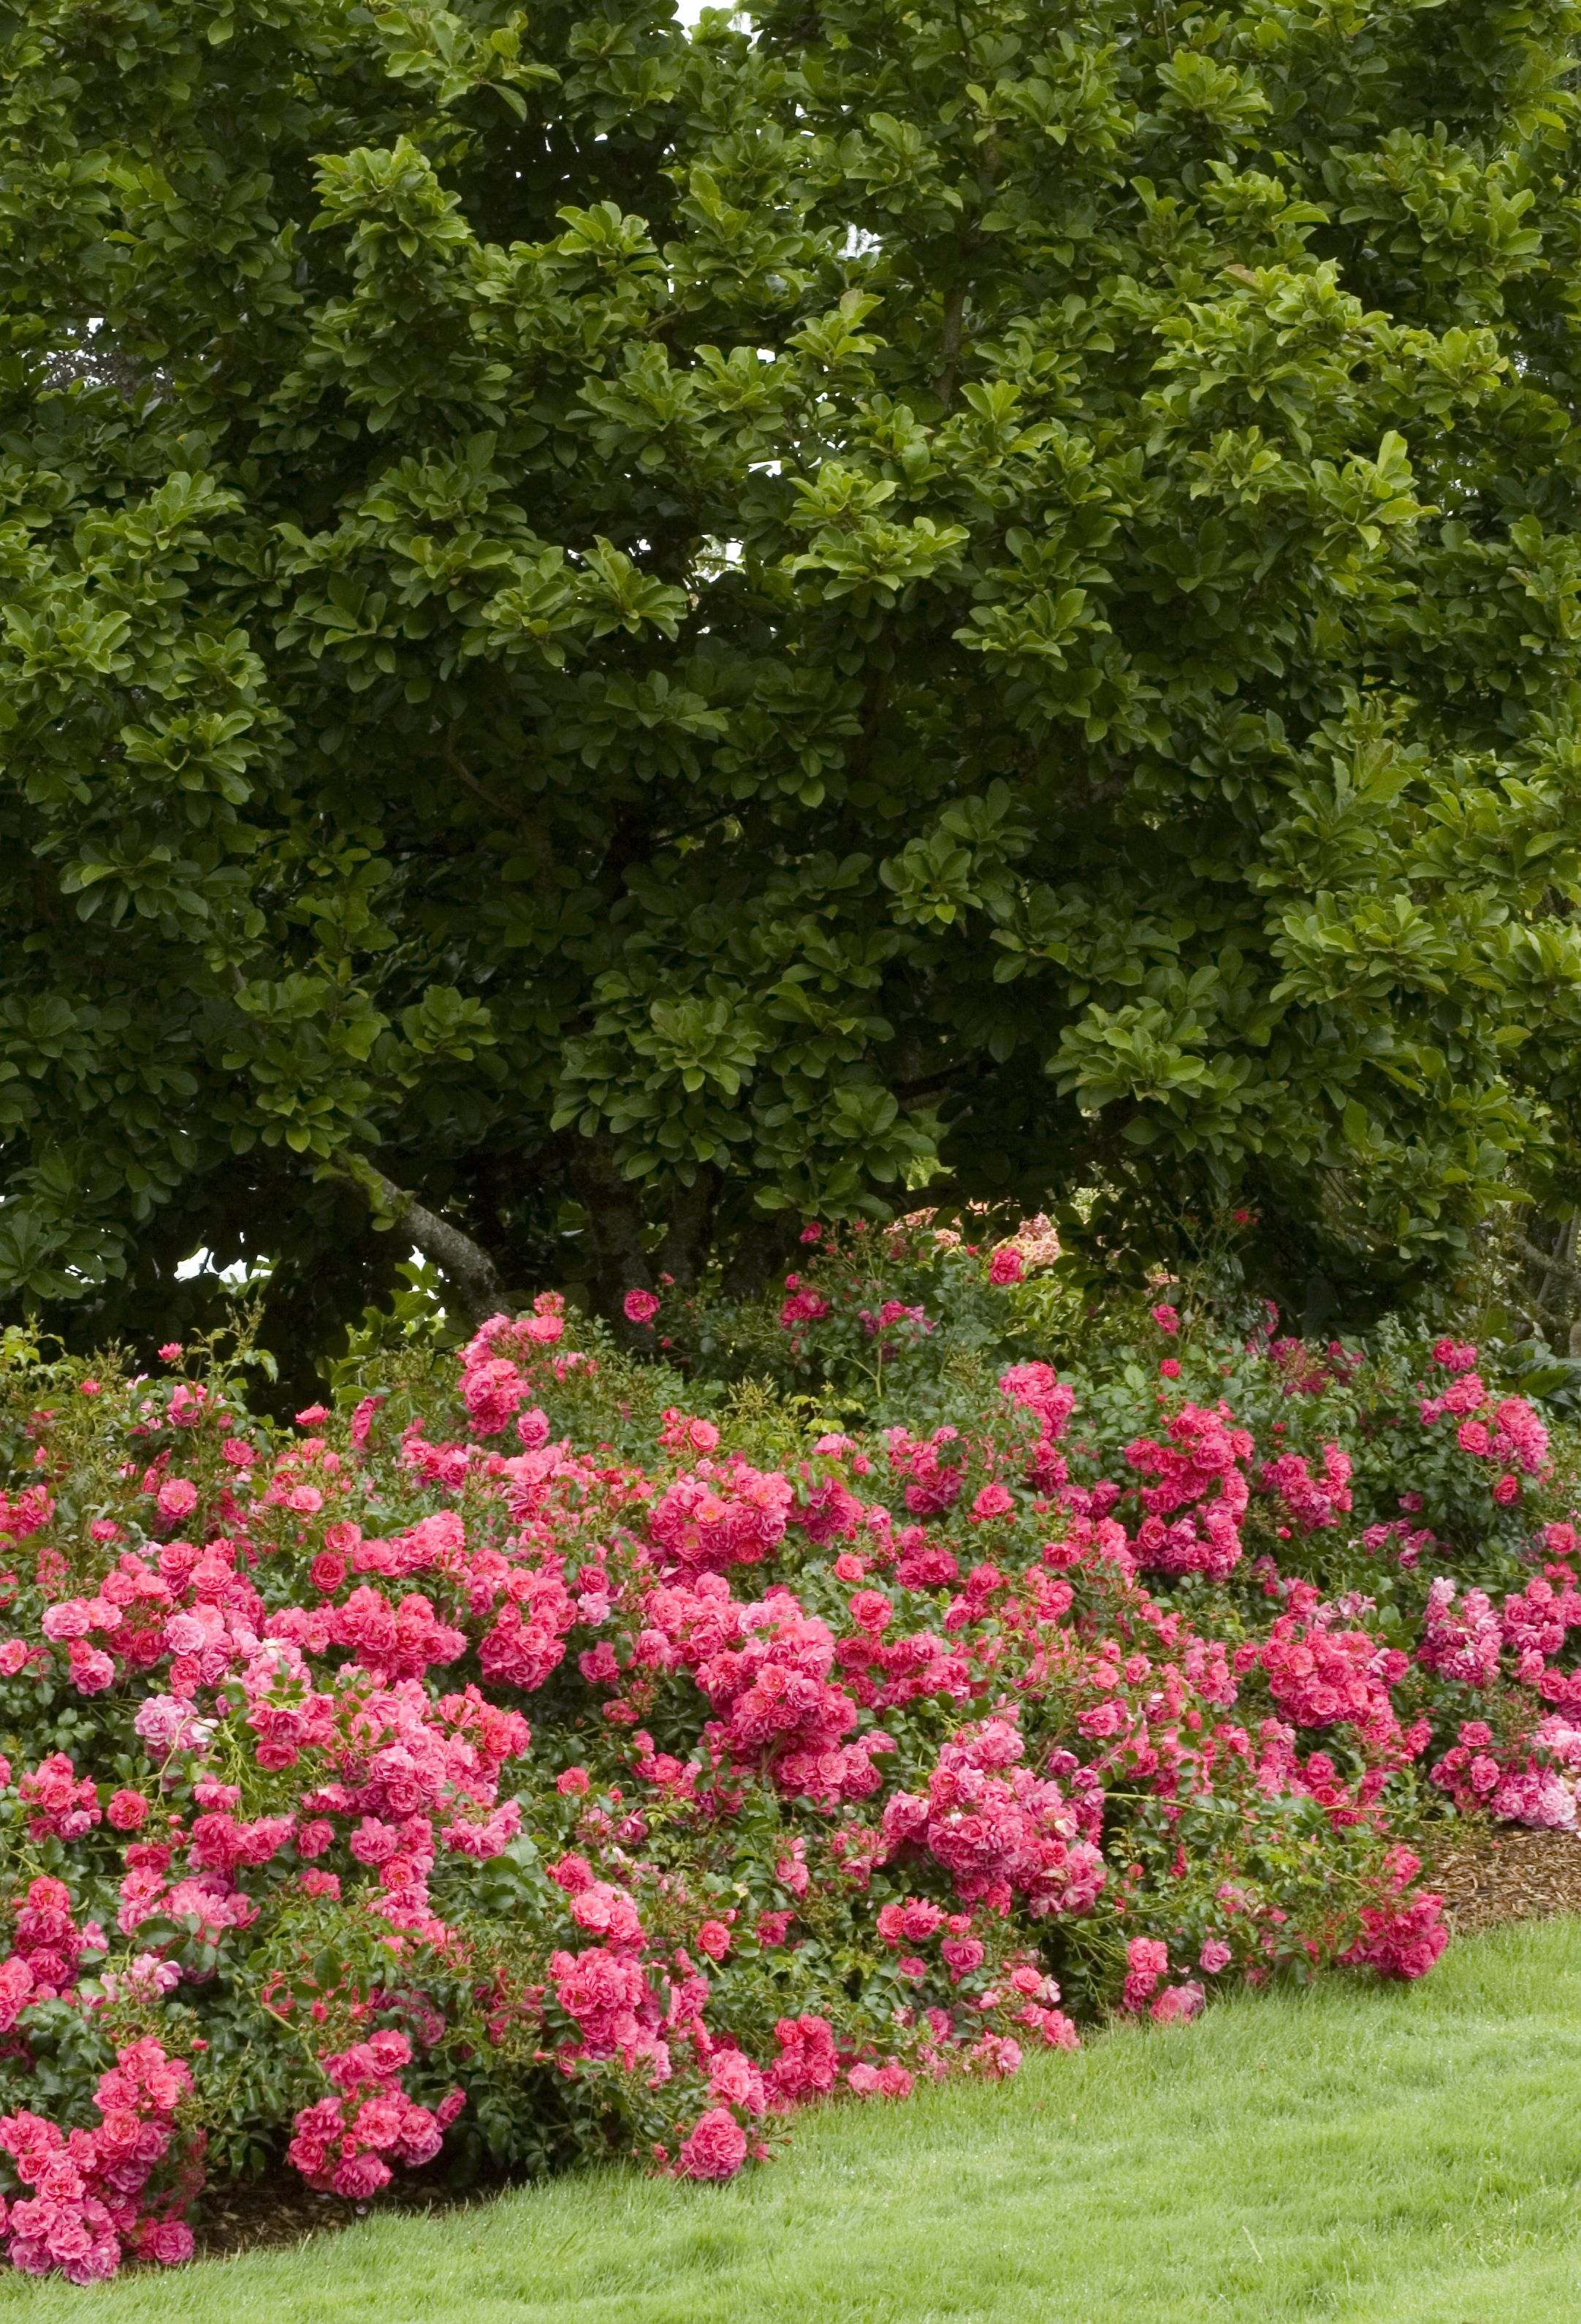 Flower Carpet Pink Groundcover Rose This Easy Care Groundcover Rose With Vibrant Hot Pink Flowers Provides Stunning Ground Cover Roses Growing Gardens Plants